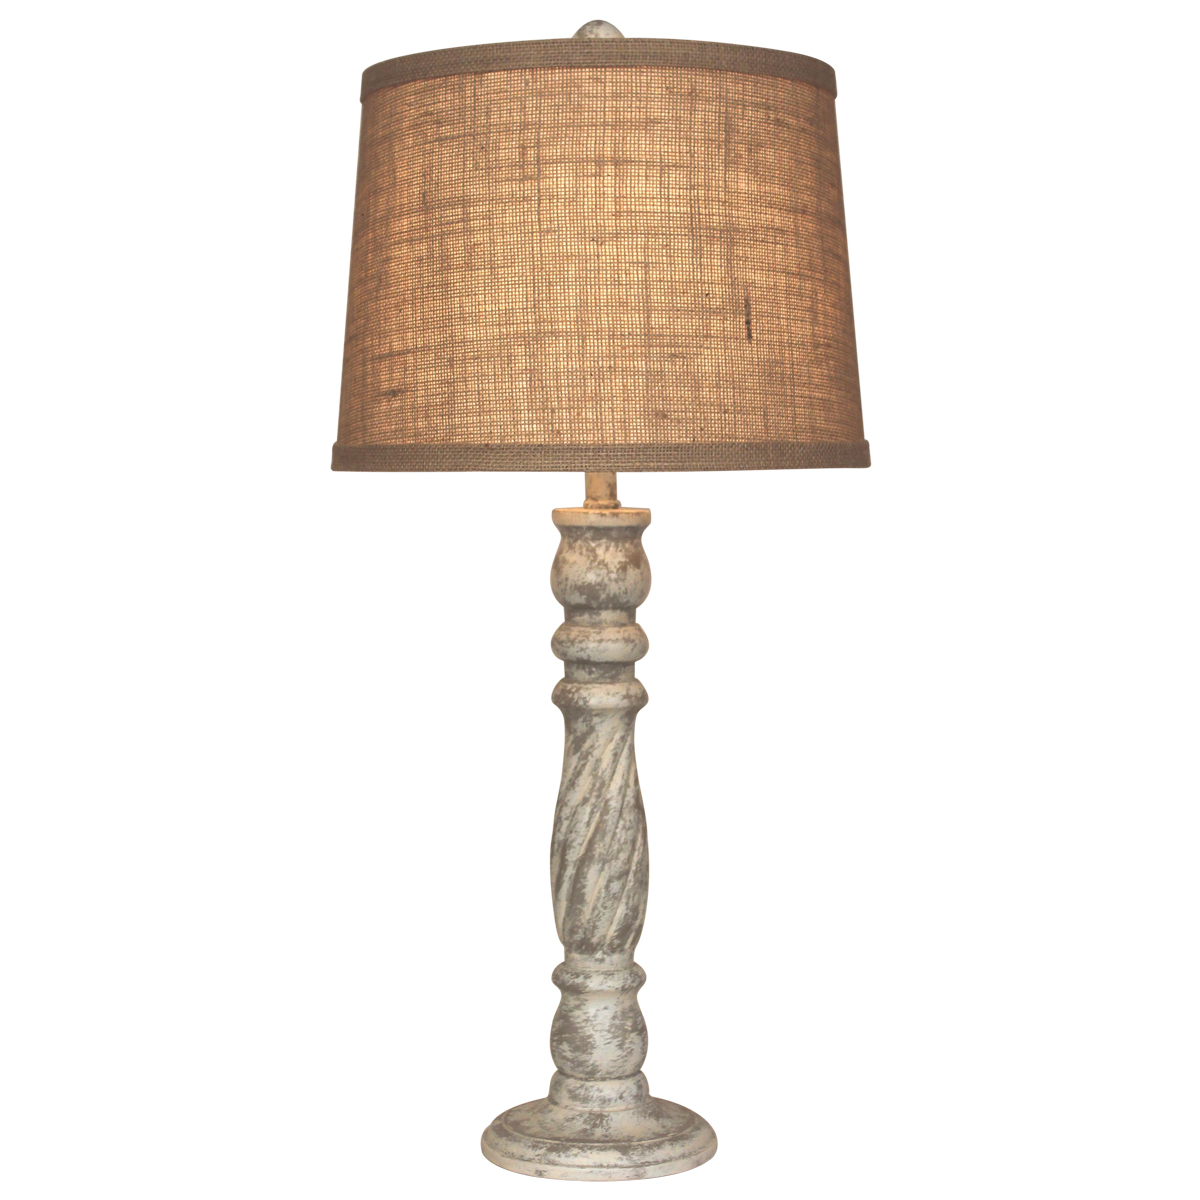 Swirled Candlestick Table Lamp